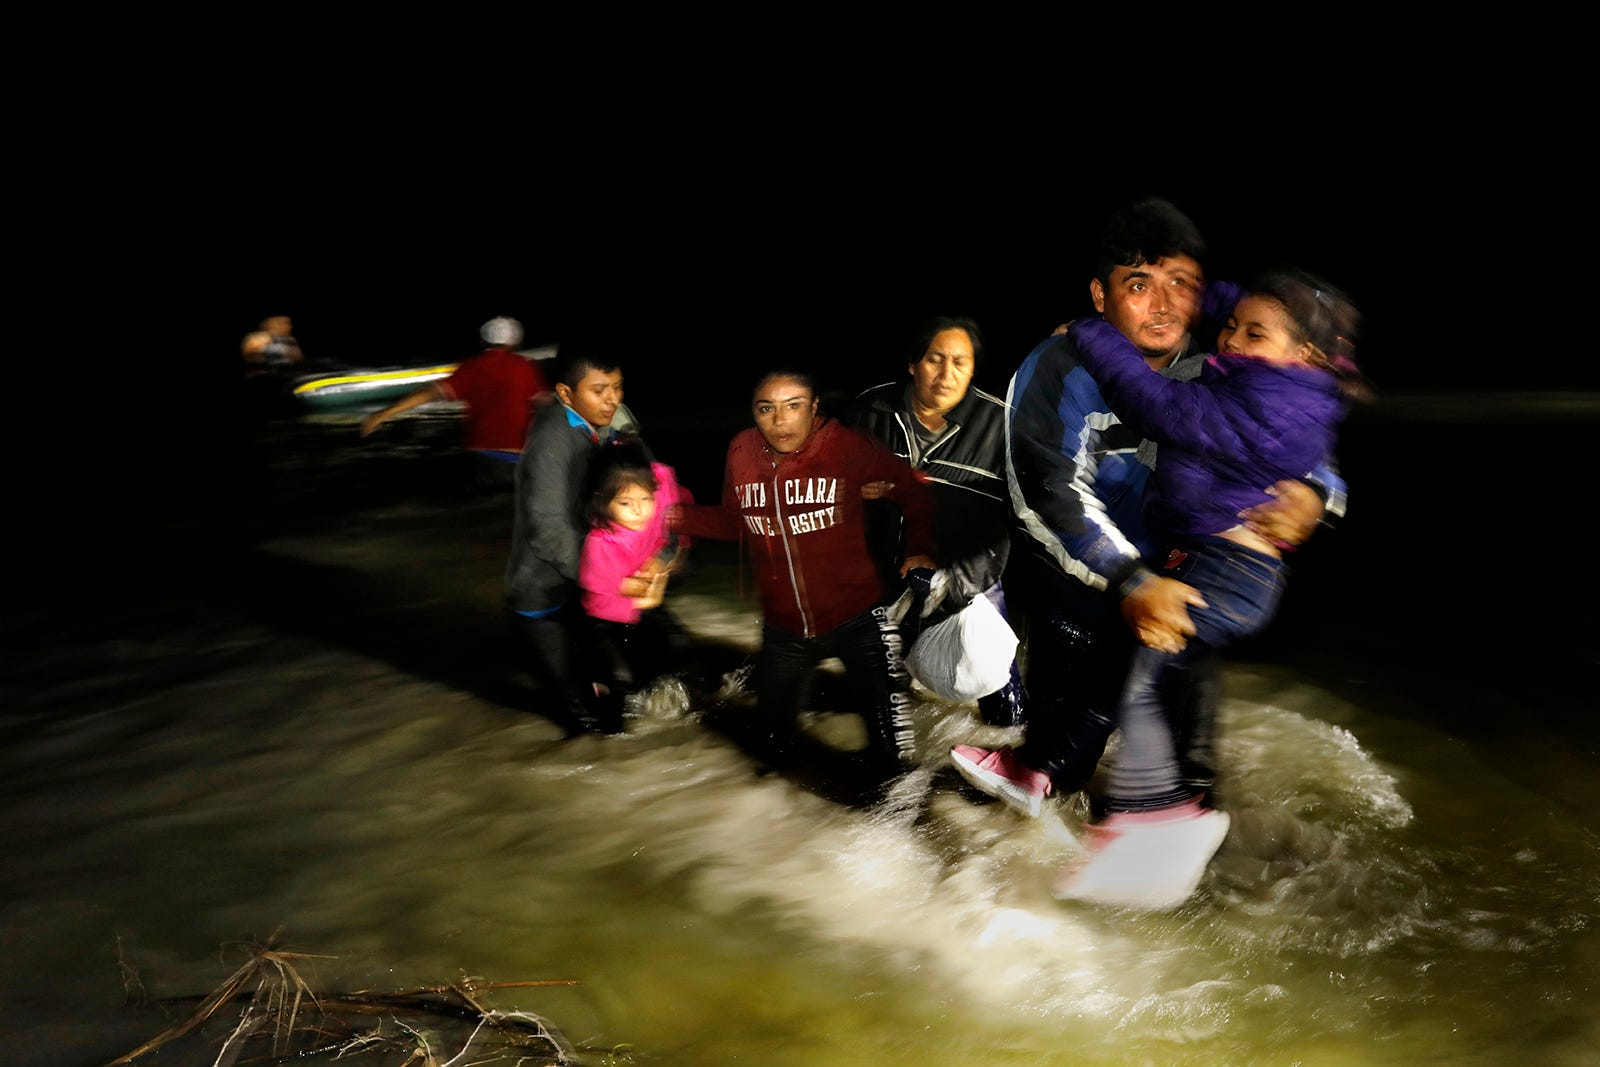 'Sitting ducks for organized crime': How Biden border policy fuels migrant kidnapping, extortion 1